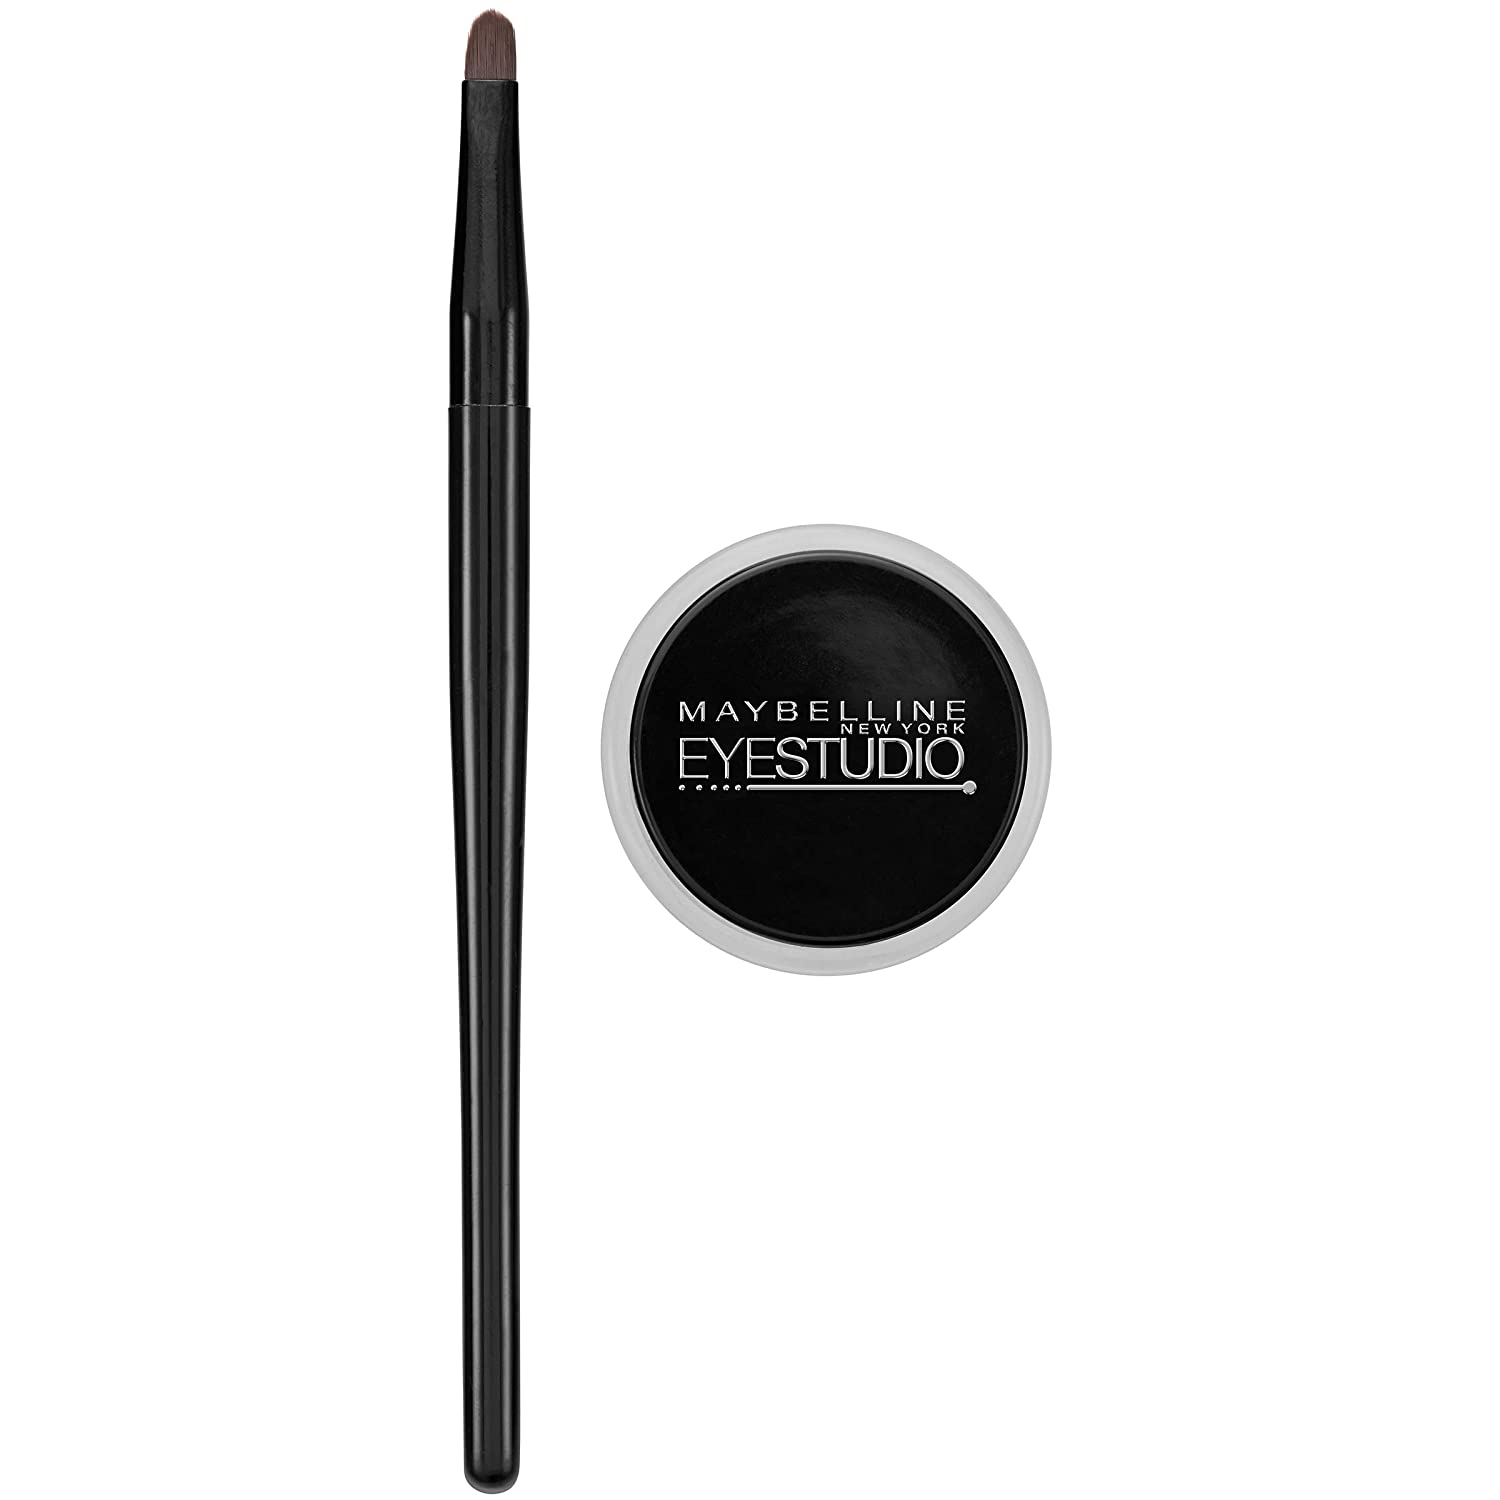 Lasting Drama Gel Eye Liner by Maybelline Studio